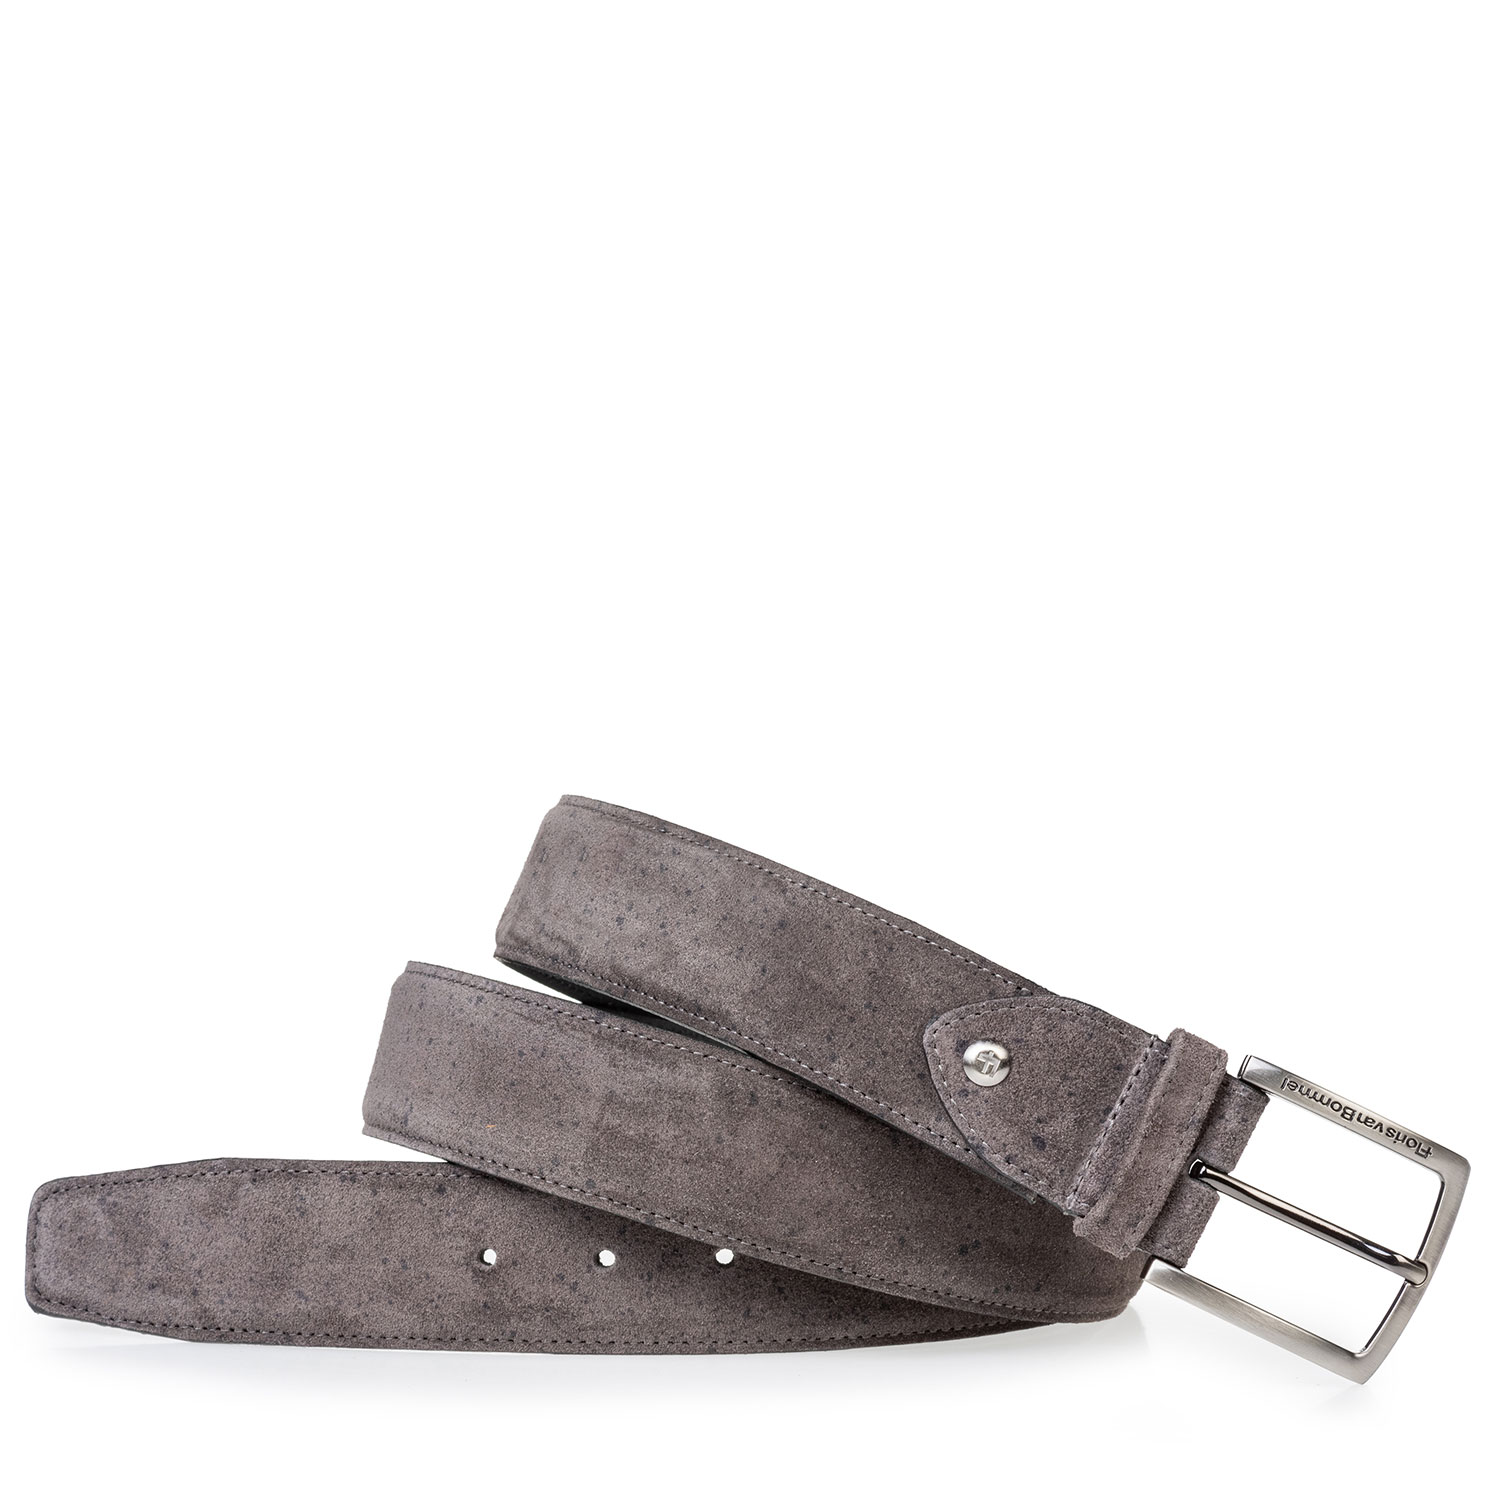 75202/94 - Suede leather belt grey with print